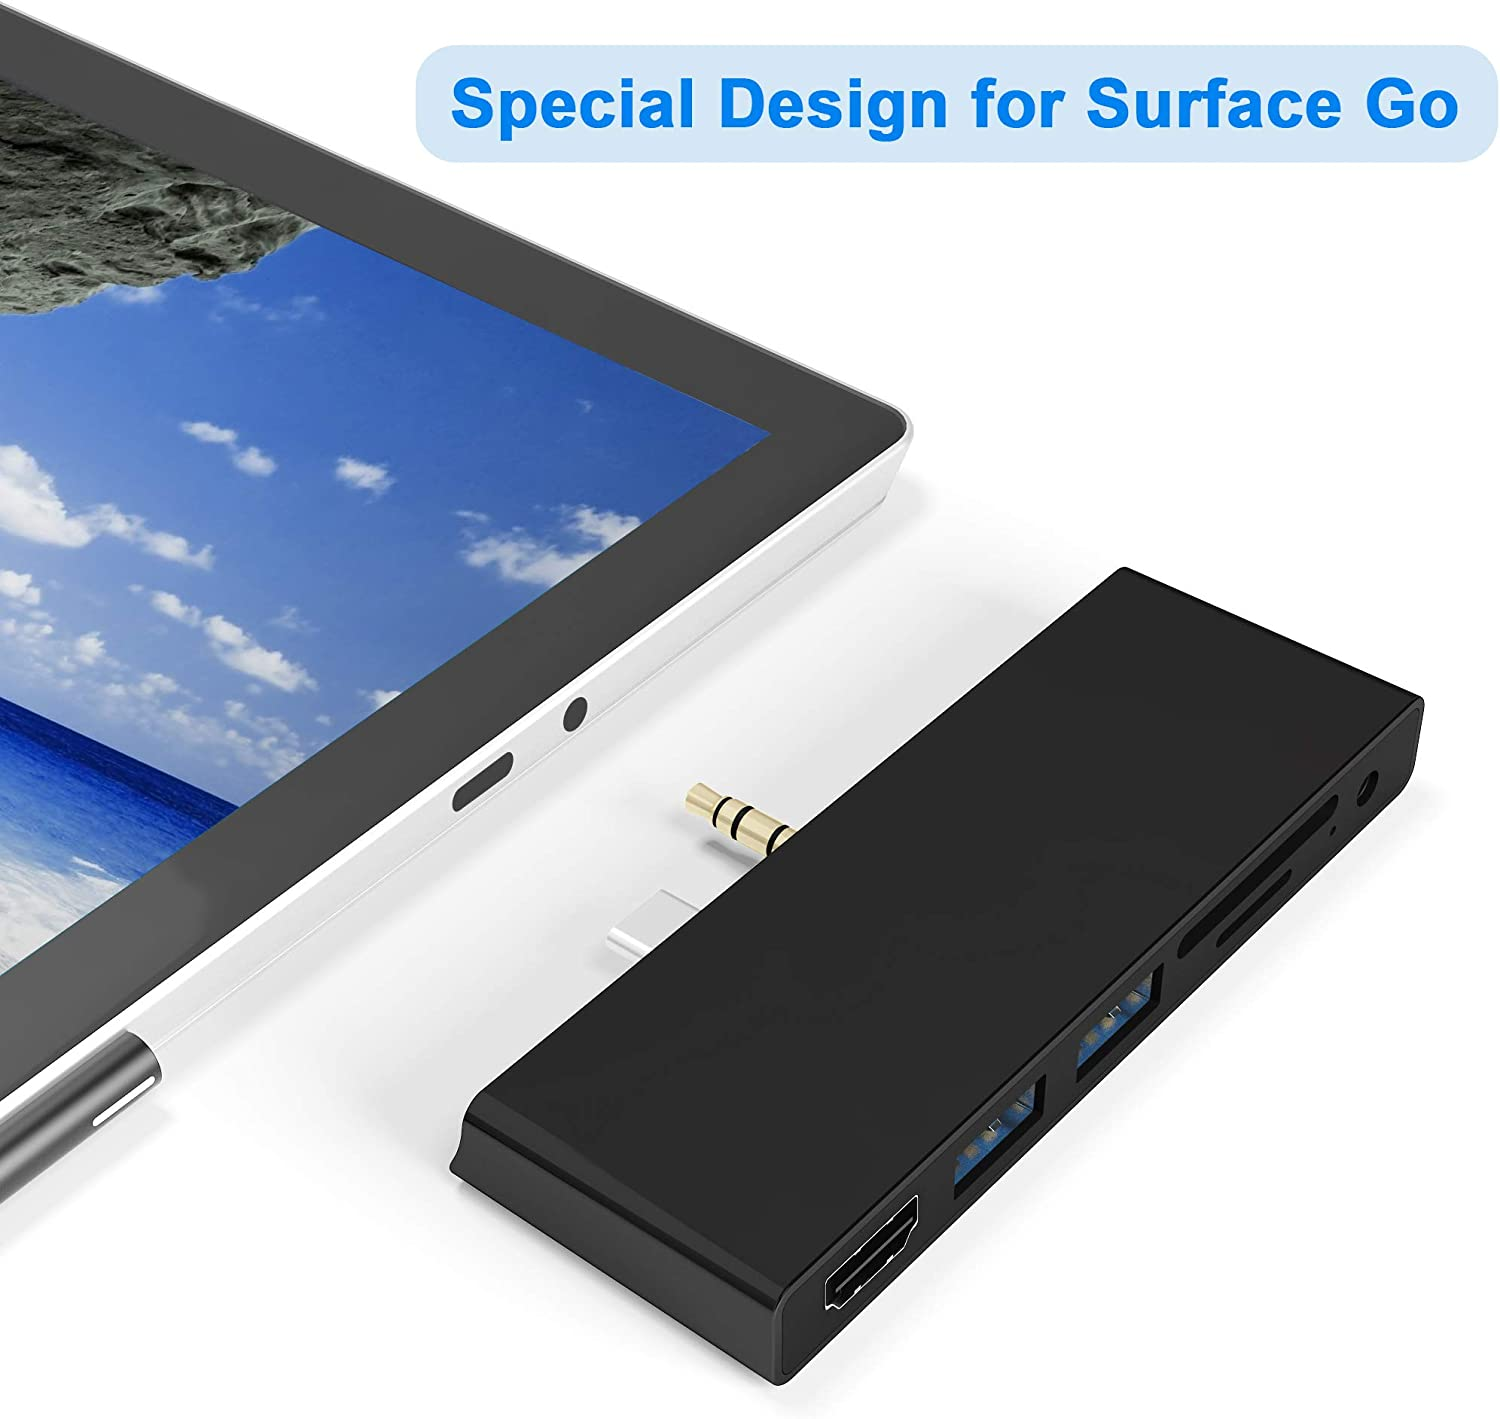 Surface Go/Go 2 USB Hub,7-in-2 Surface Go/Go 2 Docking Station,Surface Go Adapter with 4K HDMI, 2 USB 3.0 Ports, 3.5mm Earphones Jack, SD/TF Card Slot